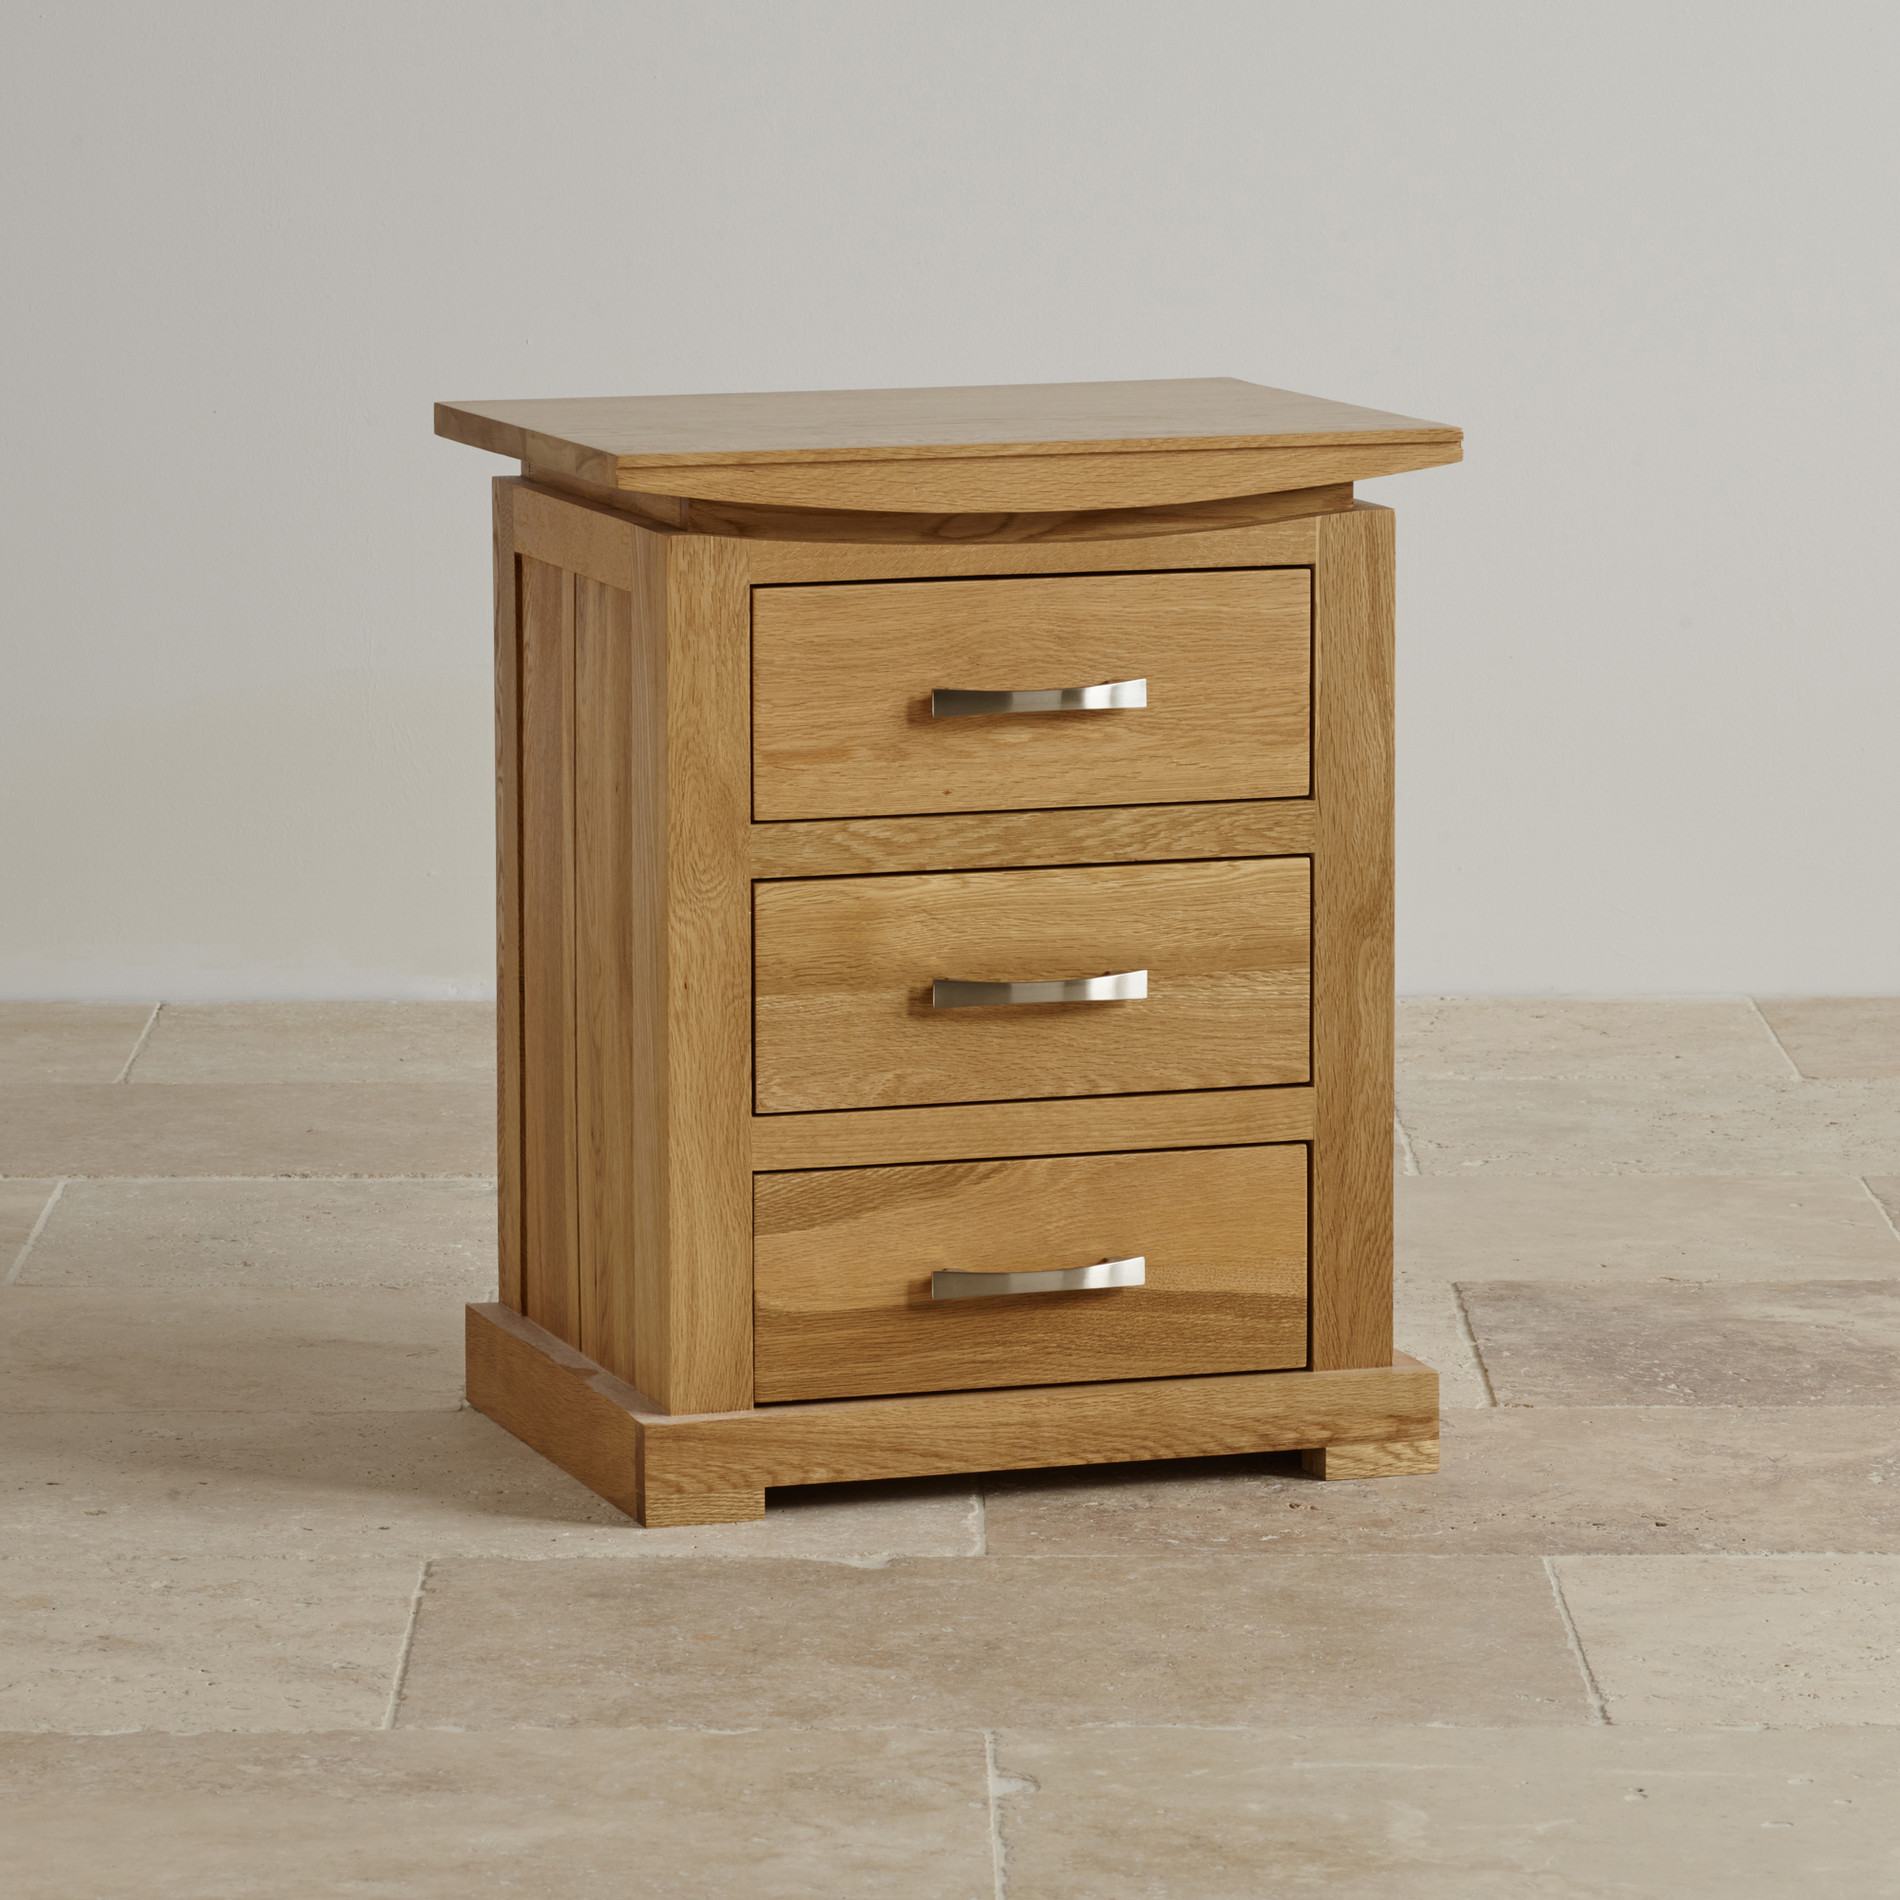 Tokyo 3 Drawer Bedside Table in Solid Oak Oak Furniture Land : tokyo natural solid oak bedside table with 3 drawers 55d7054883a1b from www.oakfurnitureland.co.uk size 1900 x 1900 jpeg 582kB